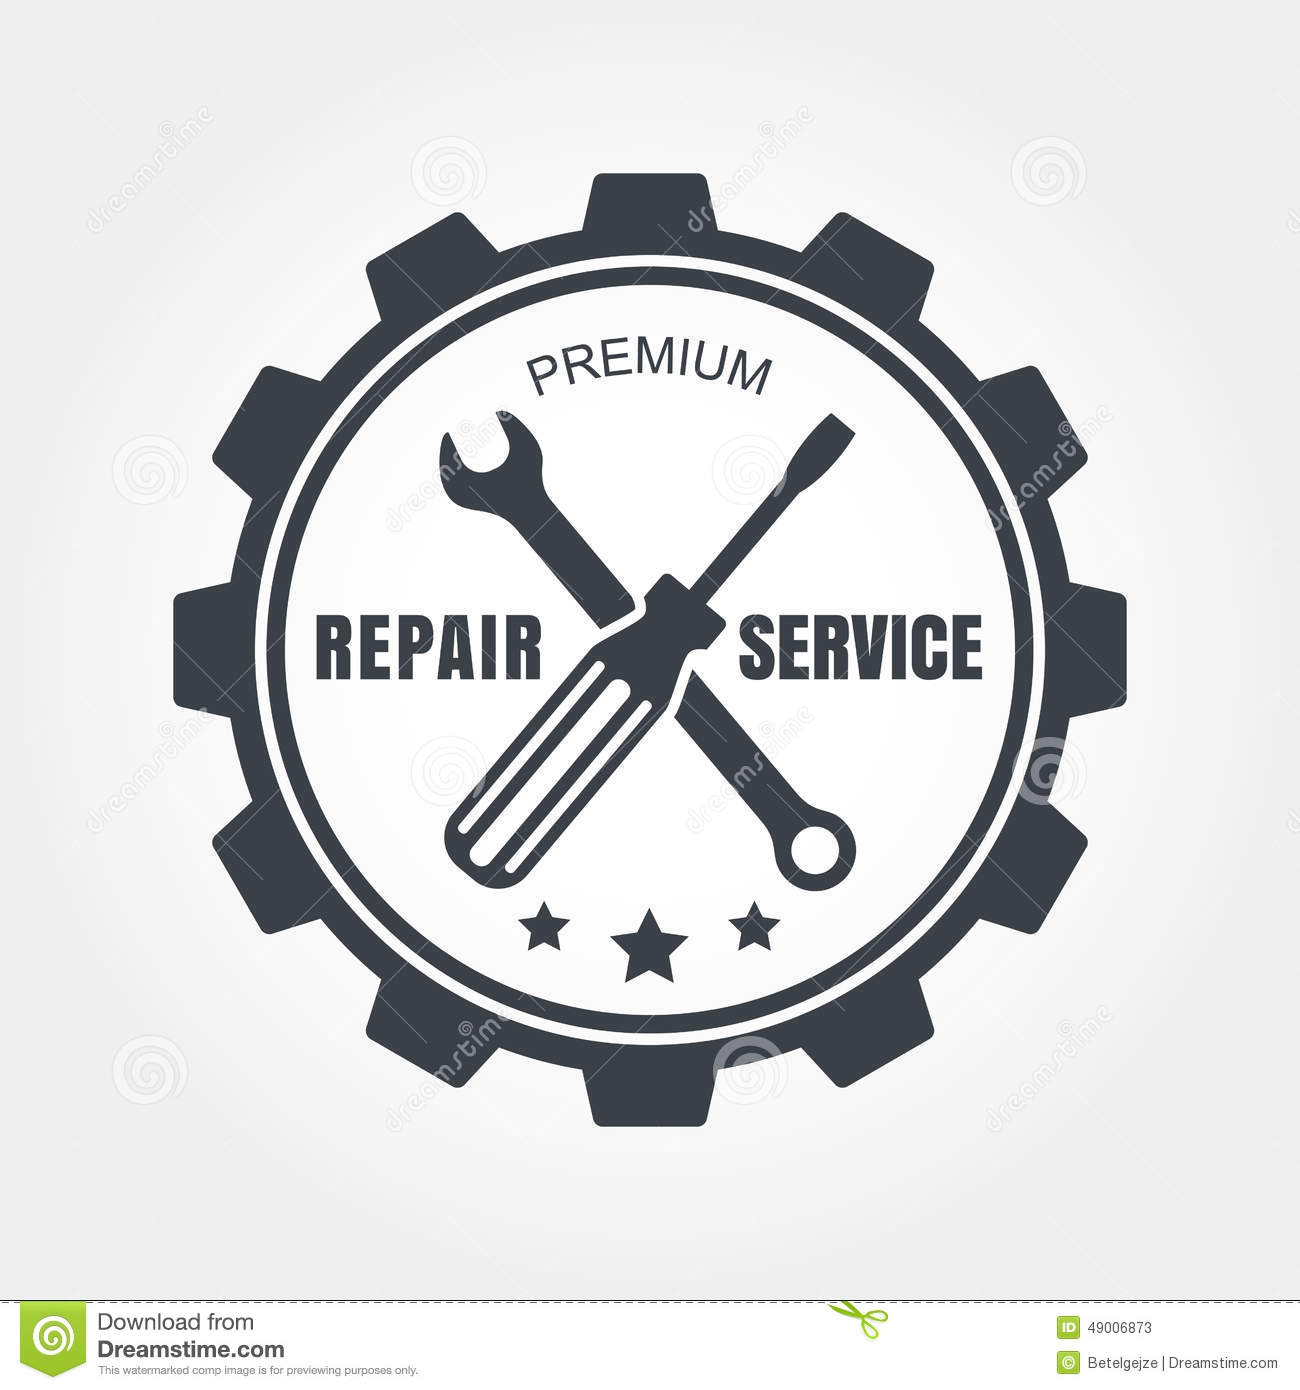 Stock Illustration Vintage Style Car Repair Service Label Vector Logo Design Templ Template Image49006873 on gear template clip art